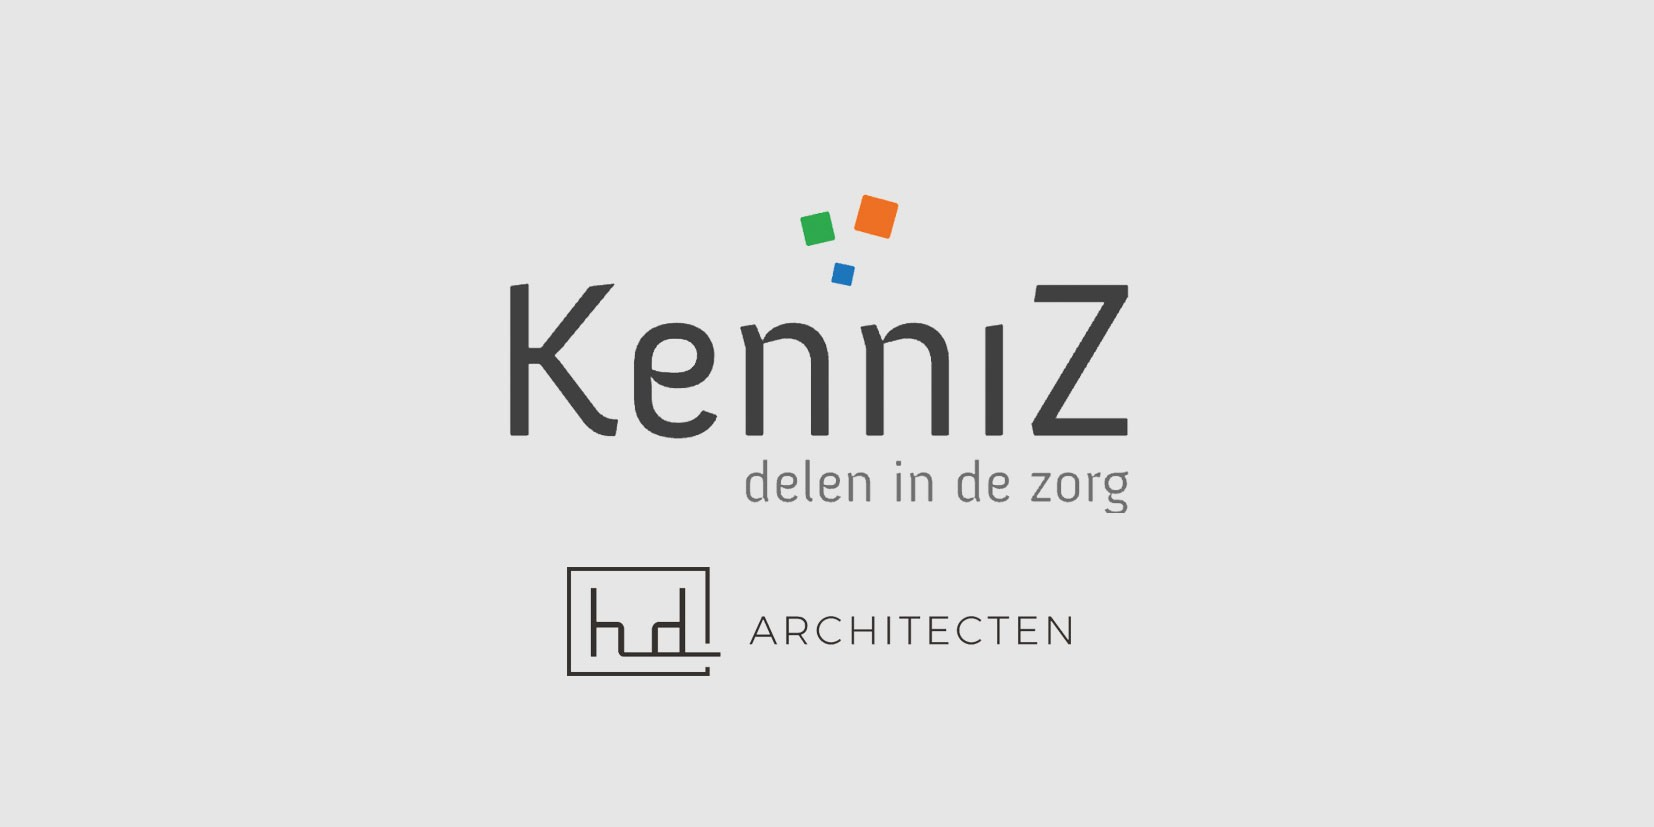 HD architecten founding partner KenniZ